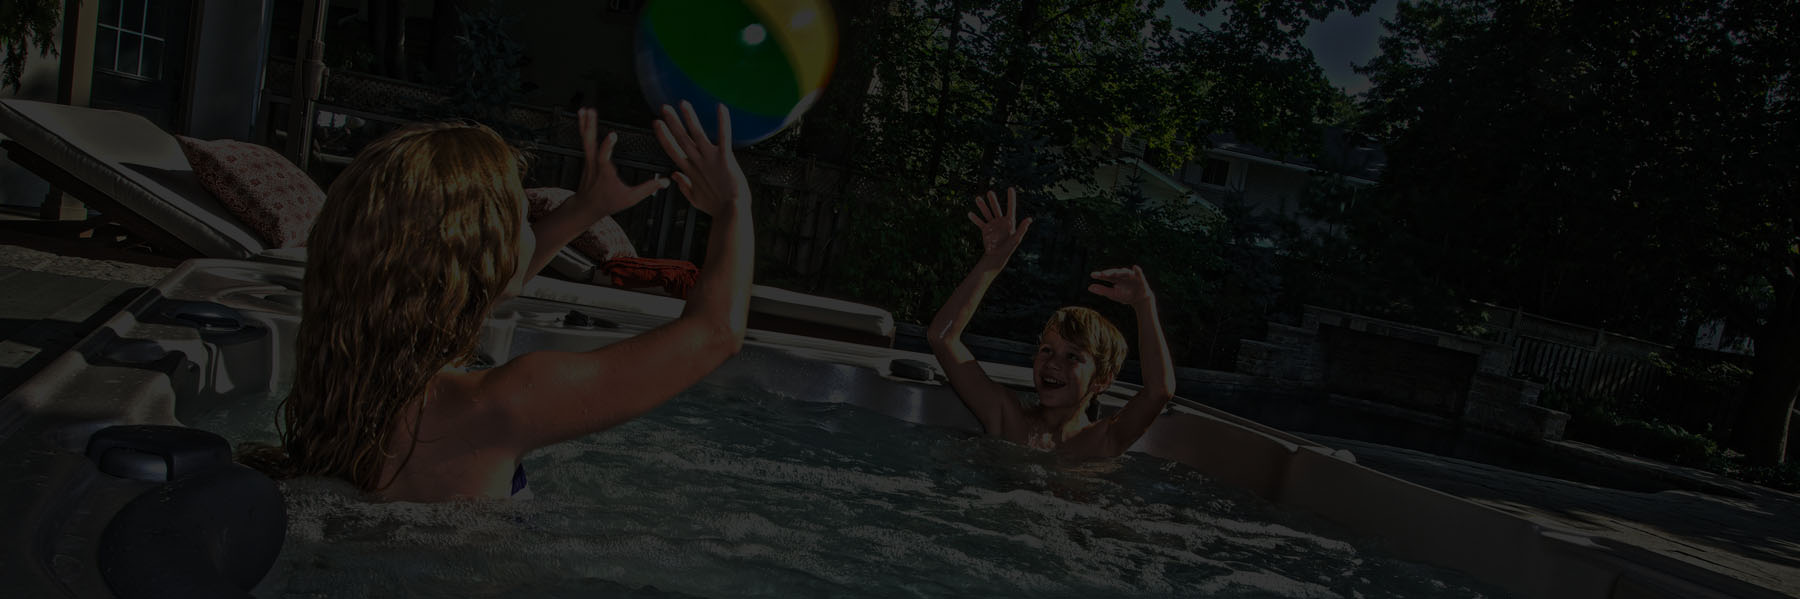 HydraPool hot tub with kids having fun with a beach ball